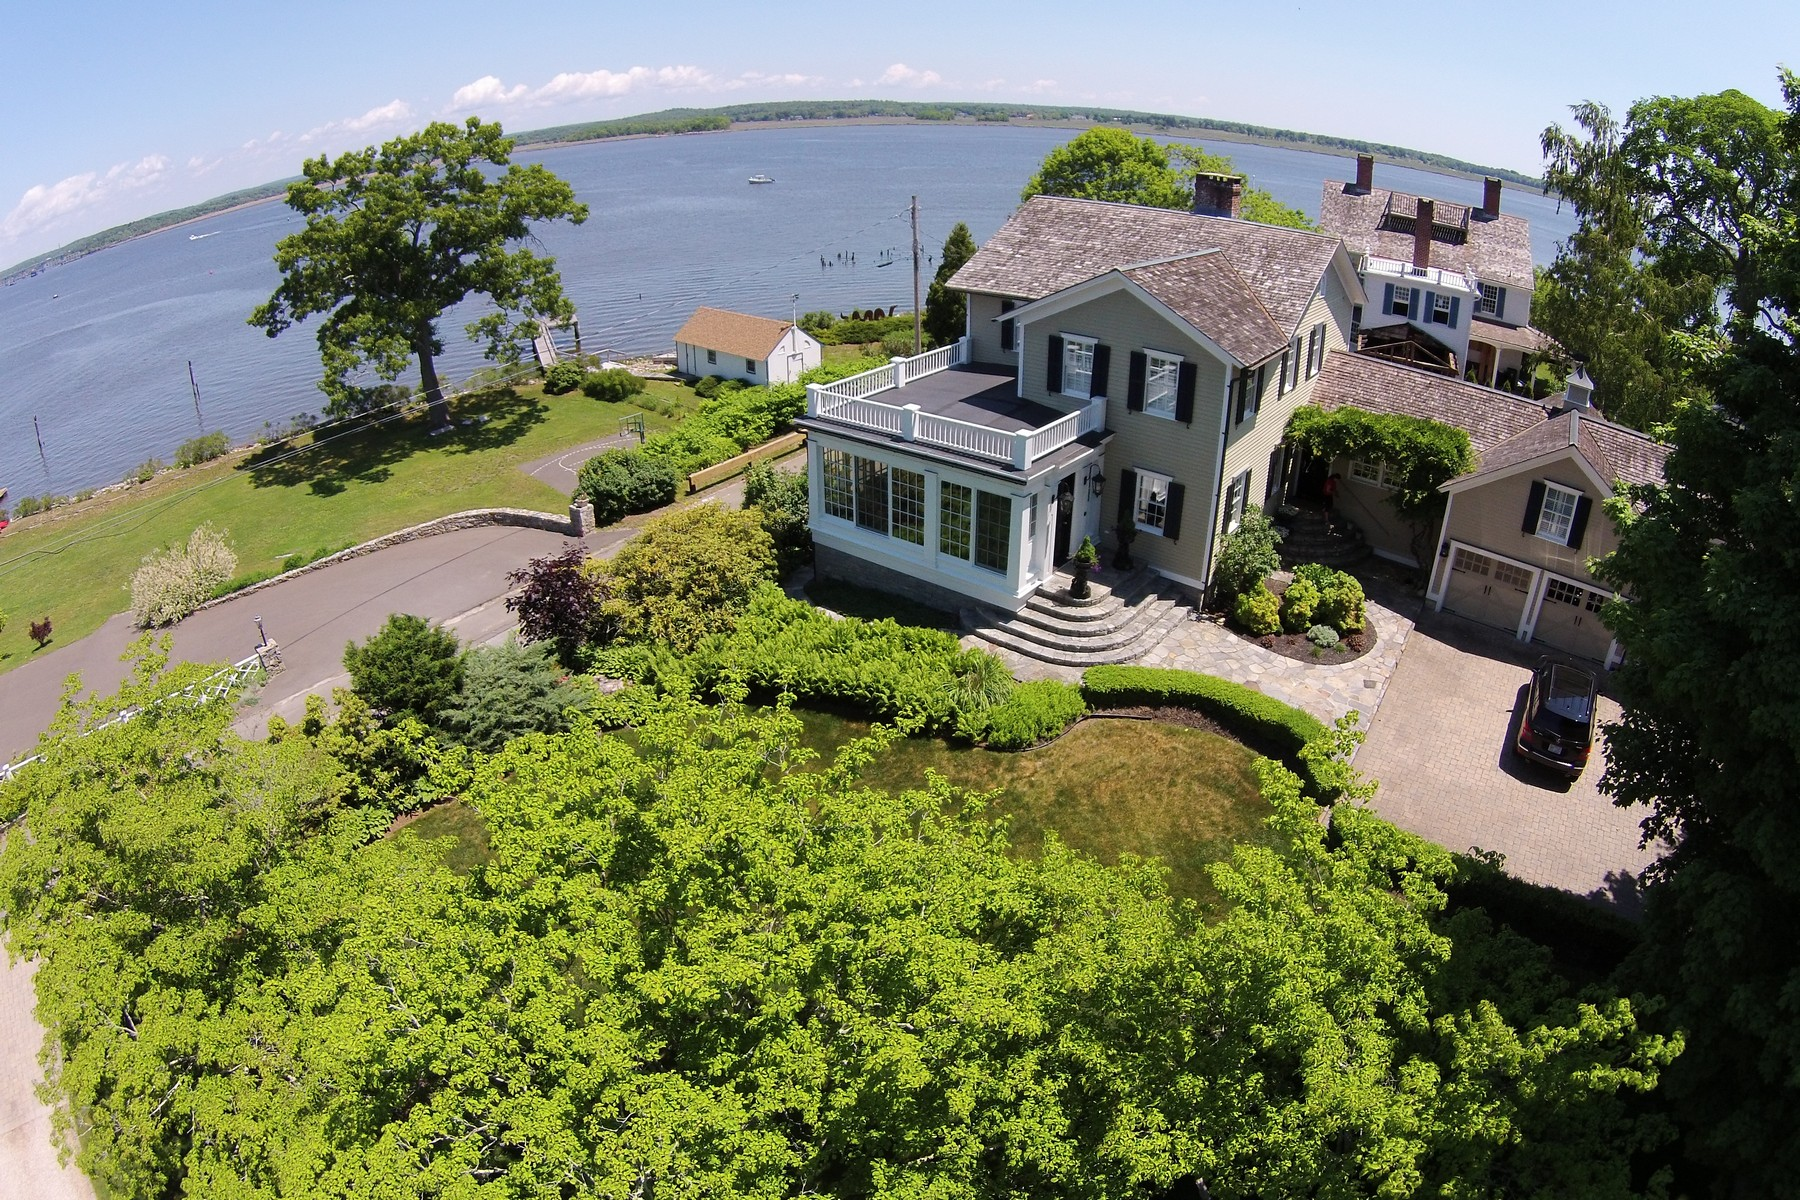 Moradia para Venda às Beautiful Historic Waterfront Home 184 North Cove Rd Old Saybrook, Connecticut 06475 Estados Unidos